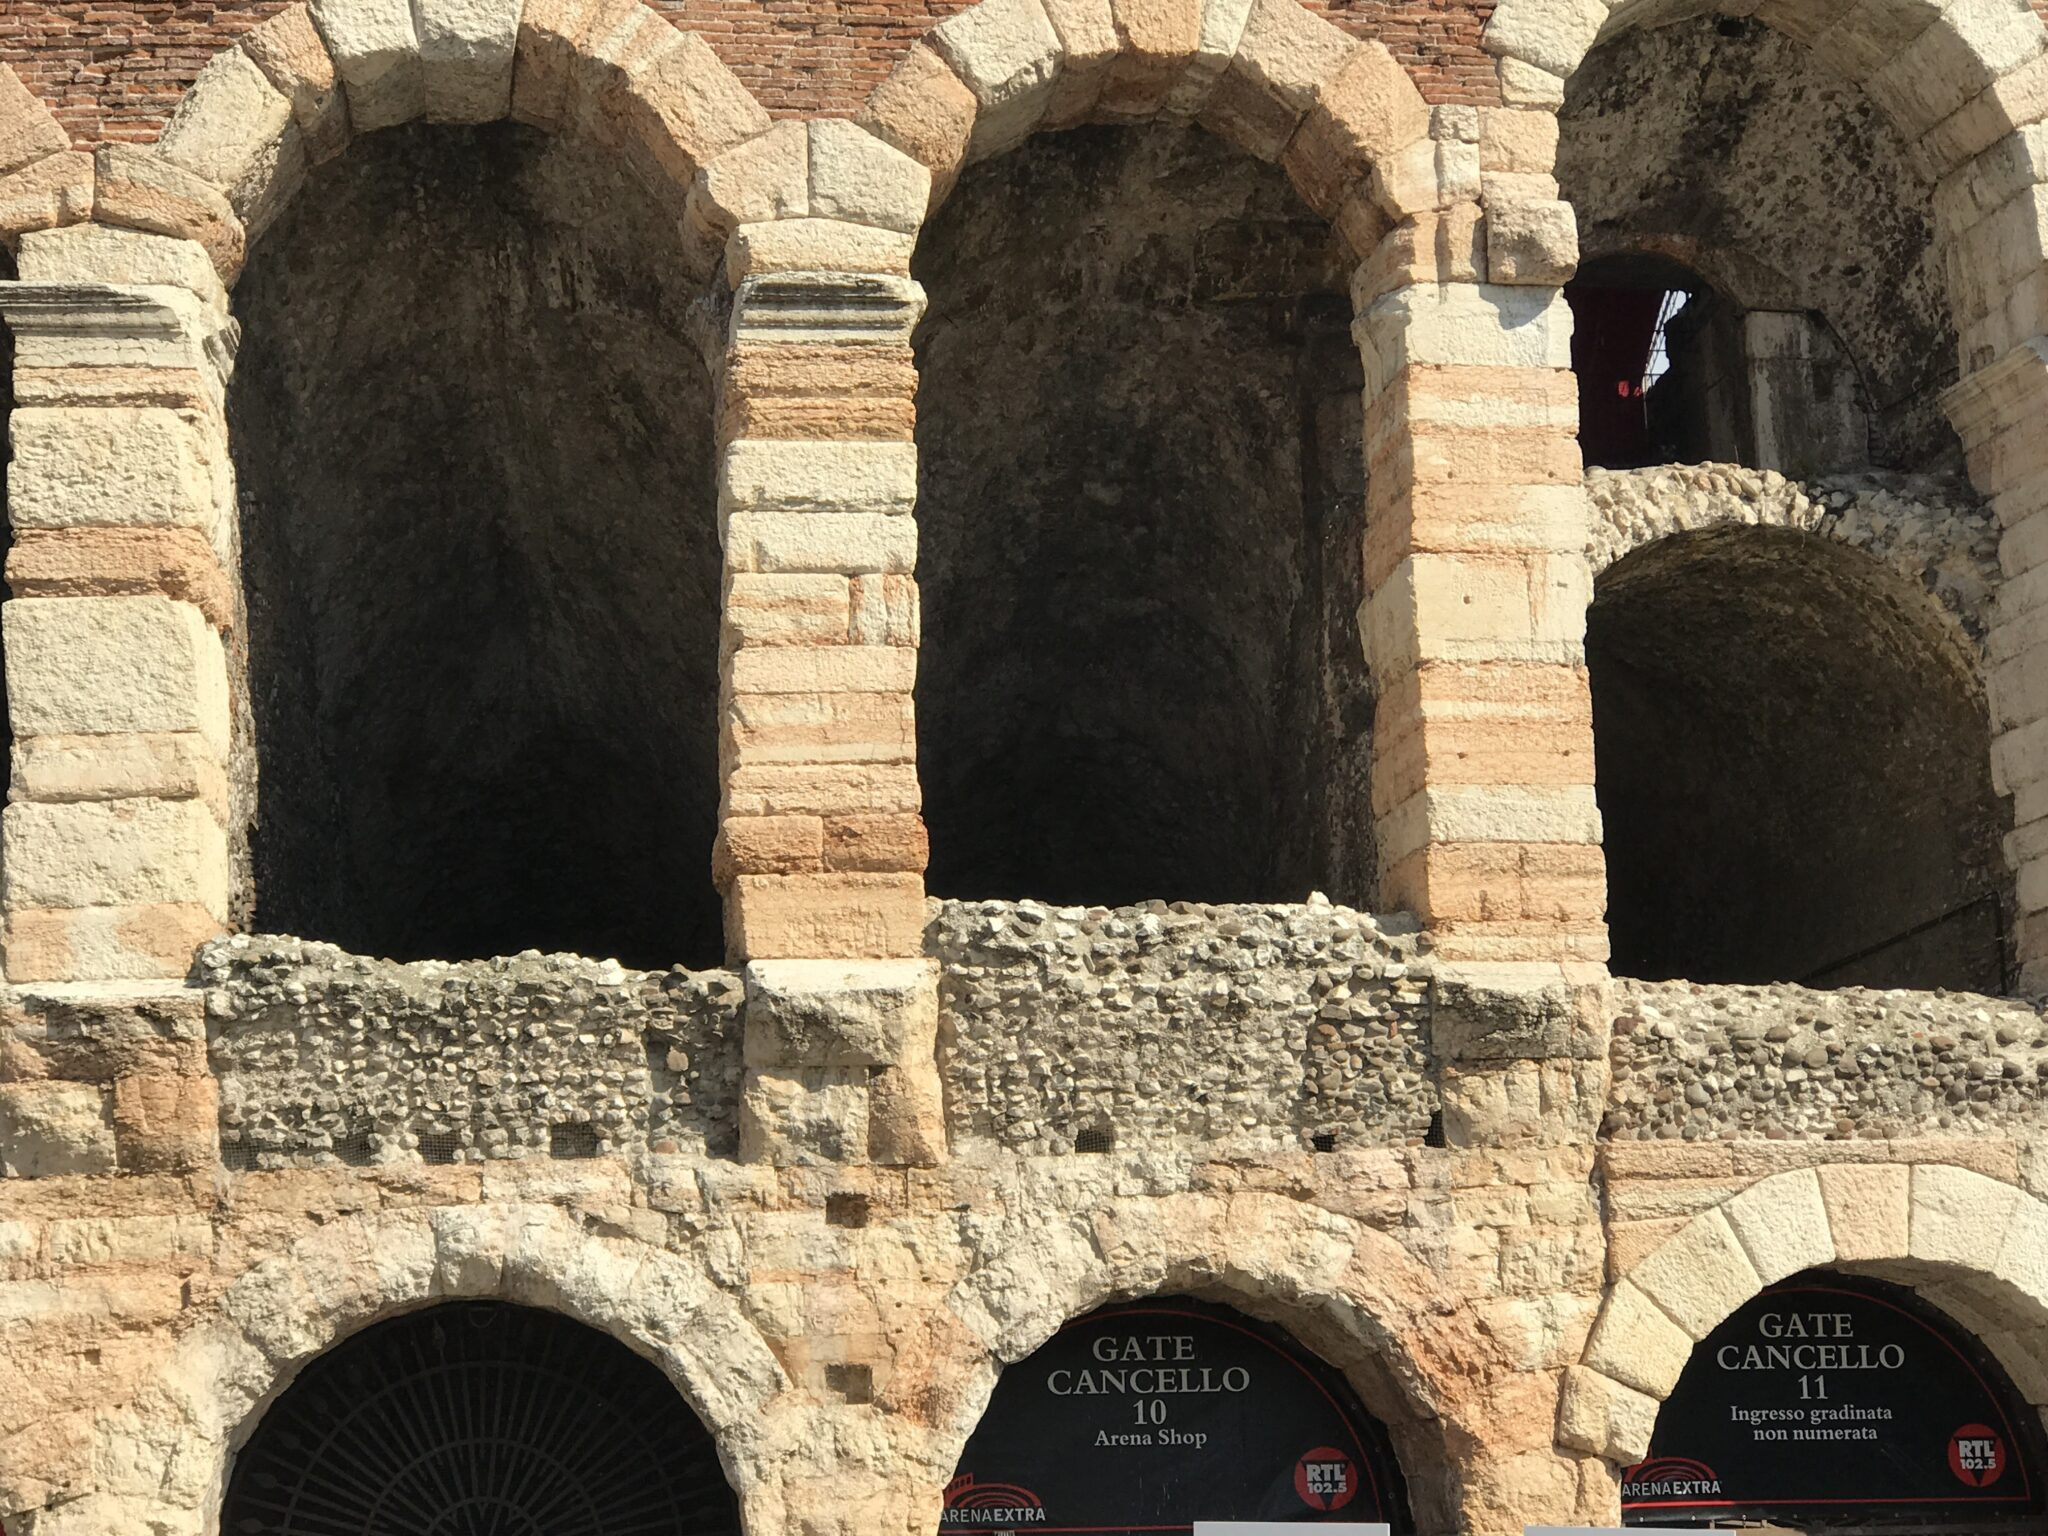 2017 – Verona Day 1 – The Modern & The Ancient